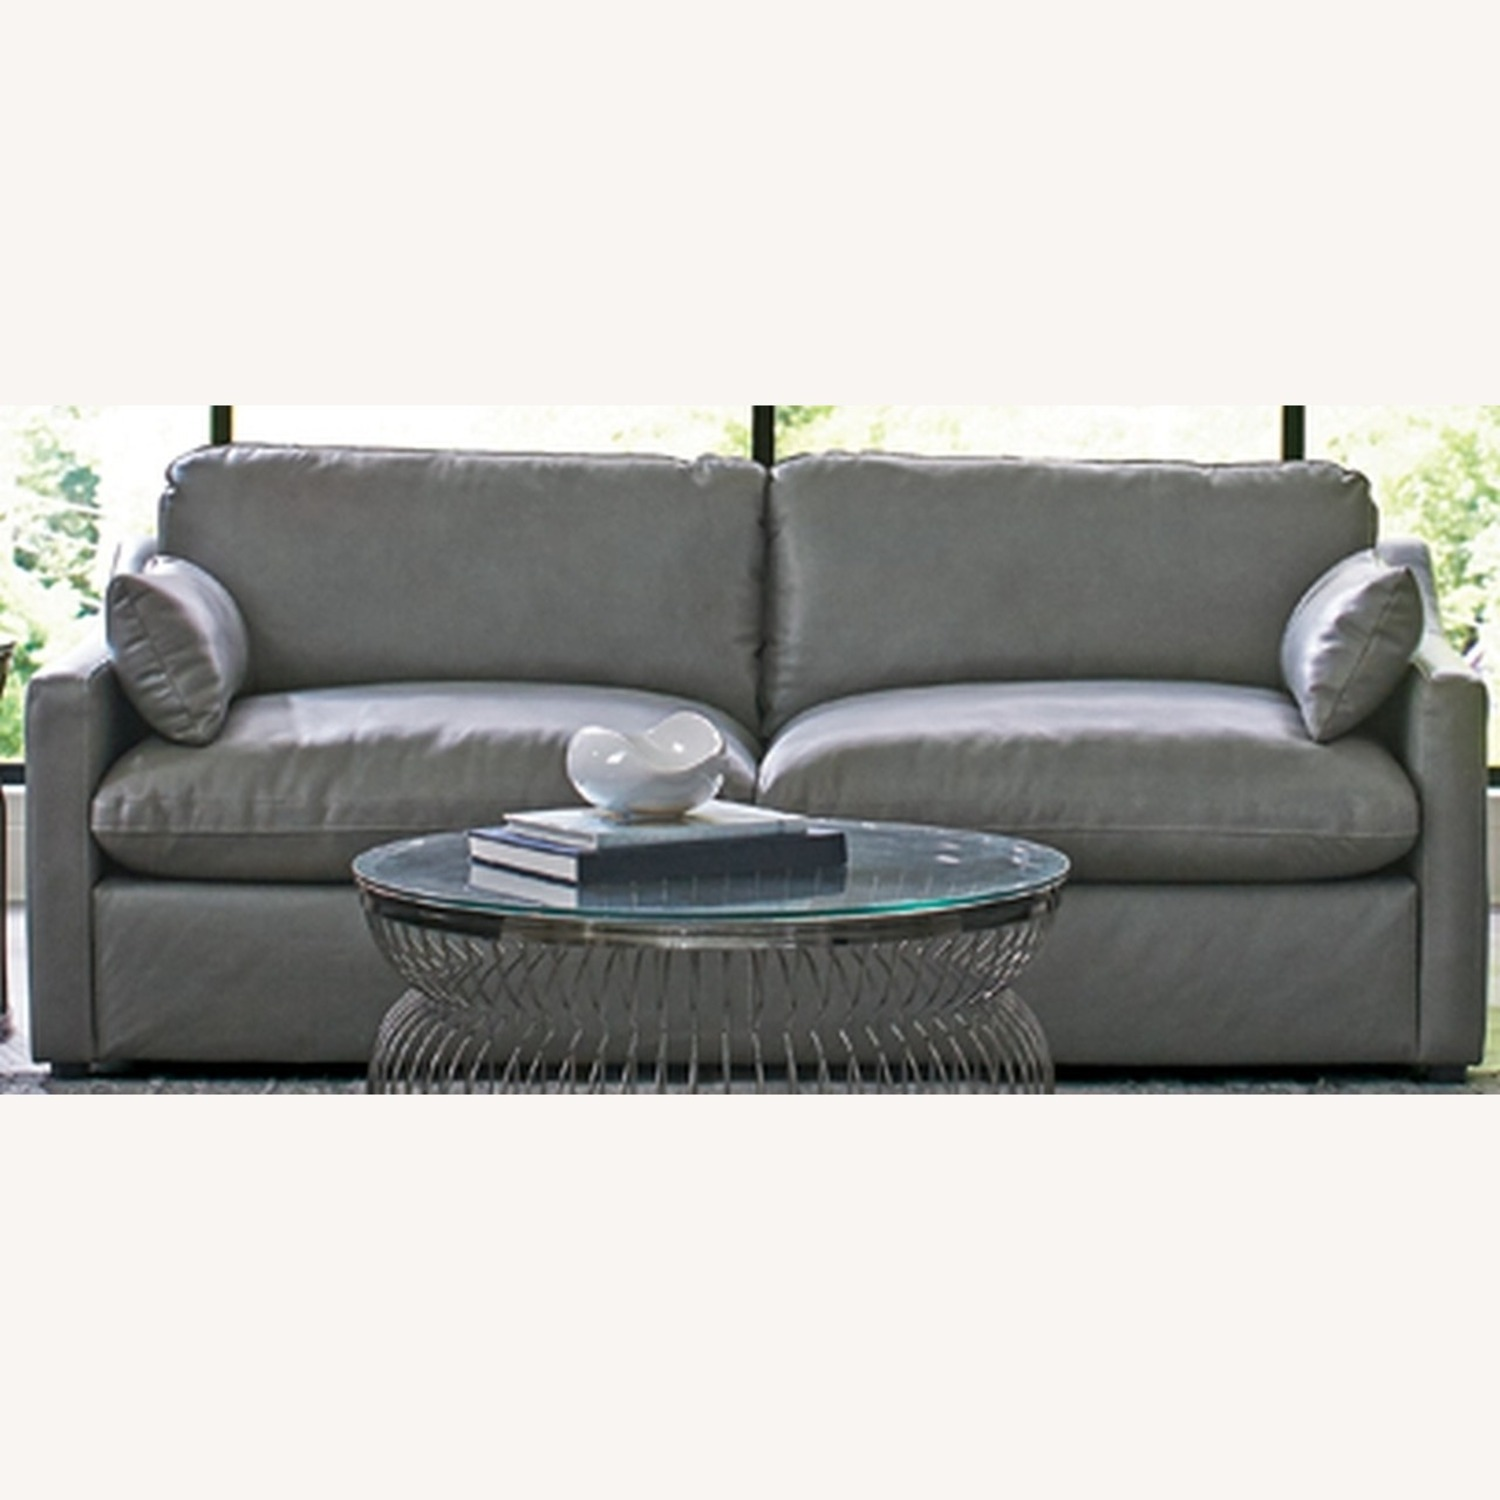 Sofa W/ Pillow-Like Seating In Grey Leather Finish - image-1